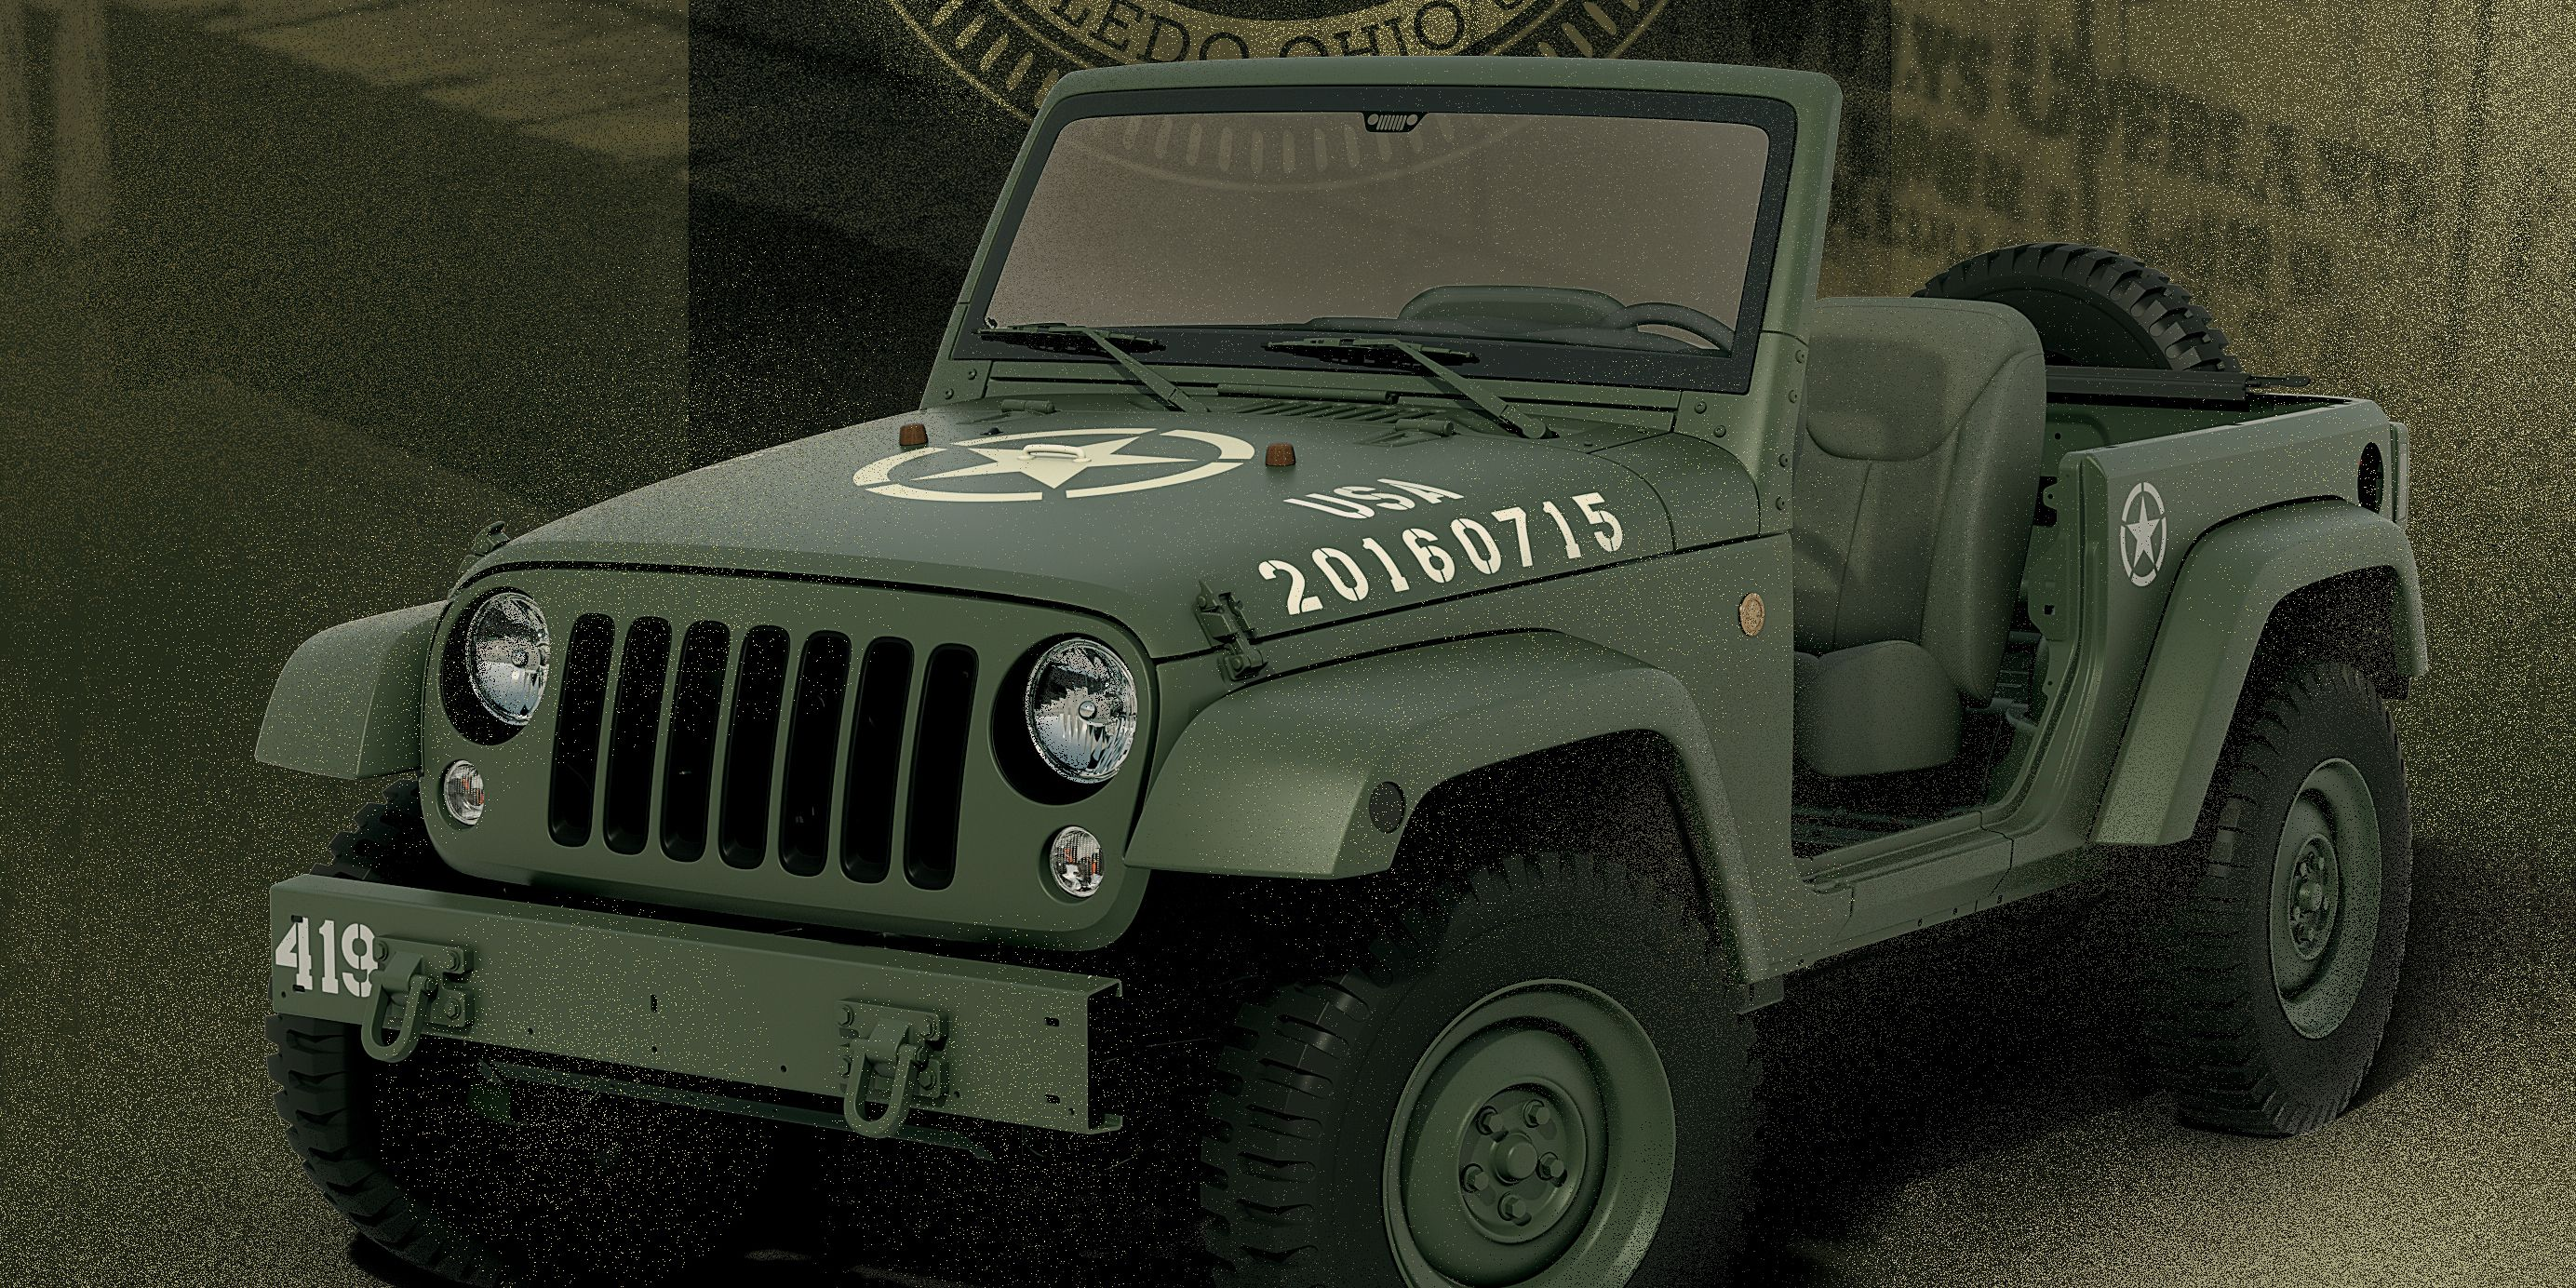 Jeep 75th Anniversary Jeep Wrangler Concept Celebrates 75 Years of